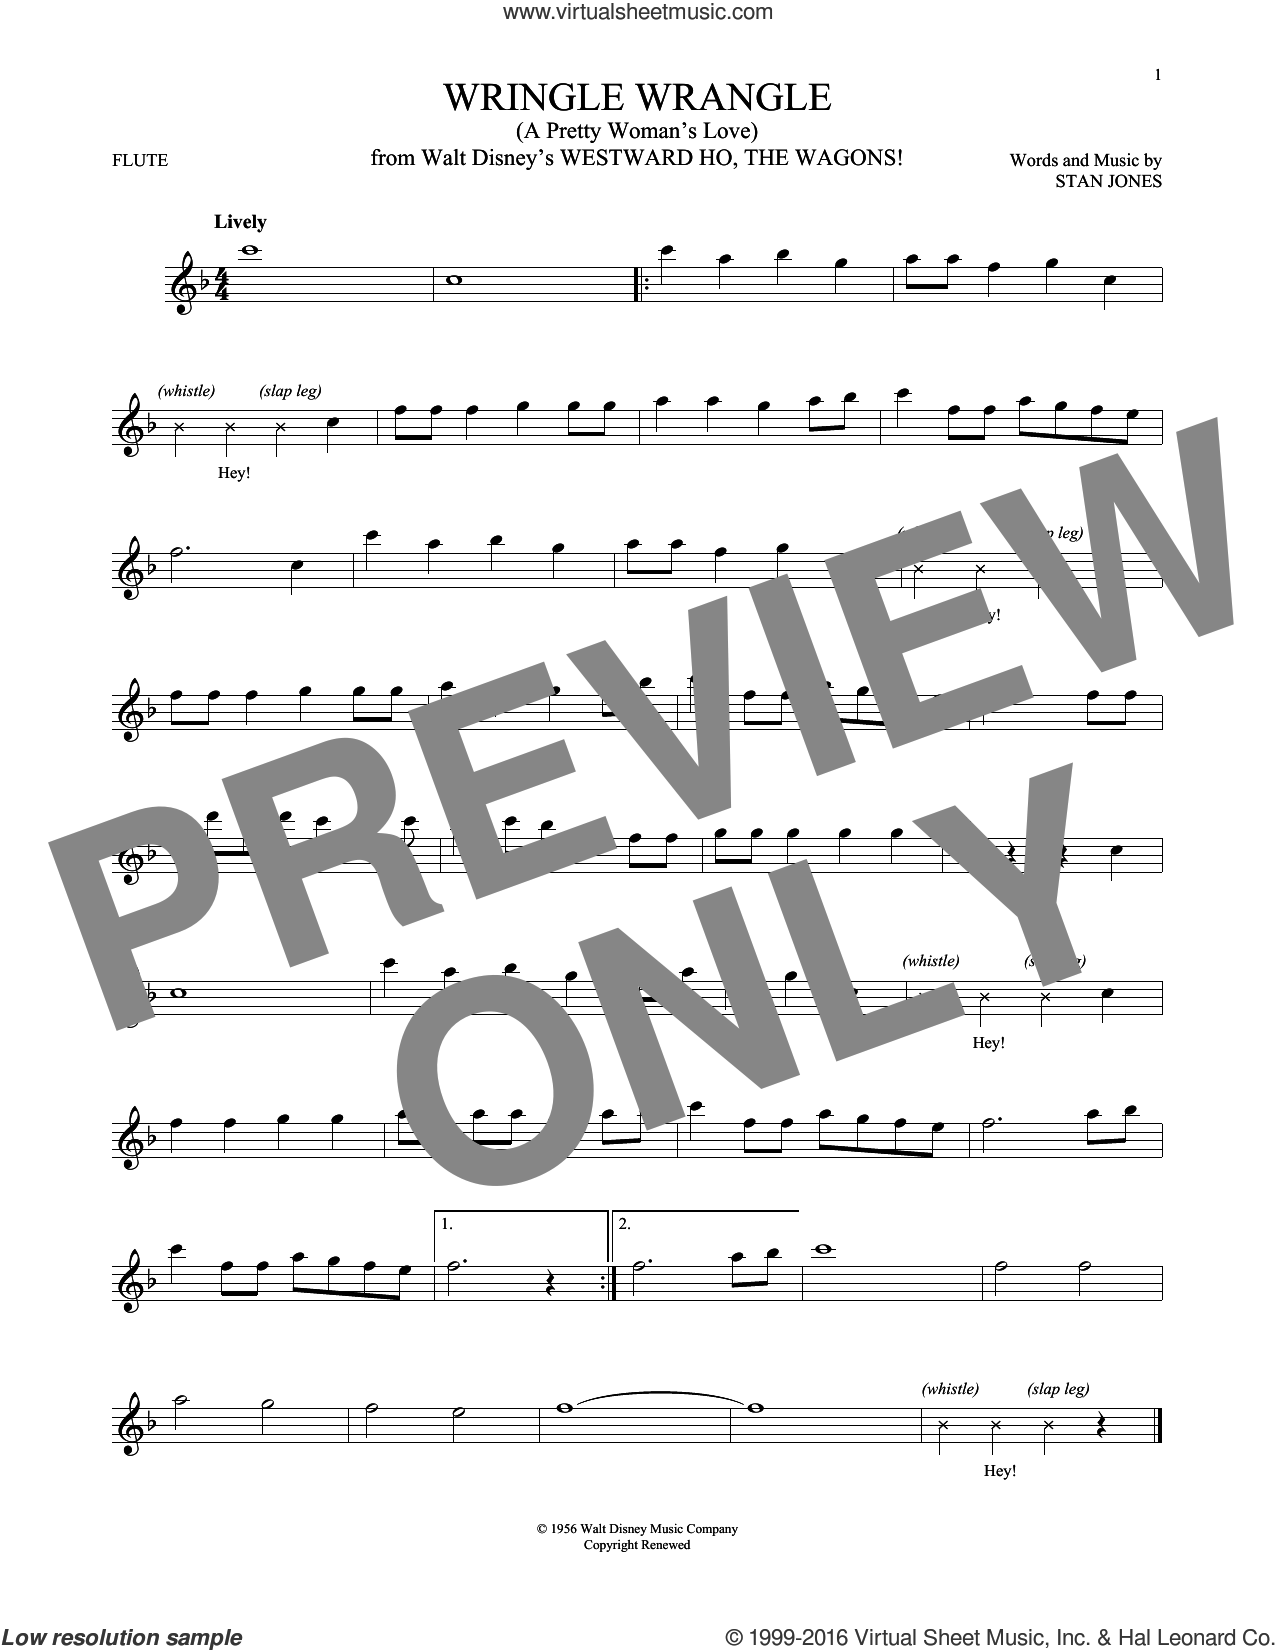 Wringle Wrangle (A Pretty Woman's Love) sheet music for flute solo by Stan Jones. Score Image Preview.